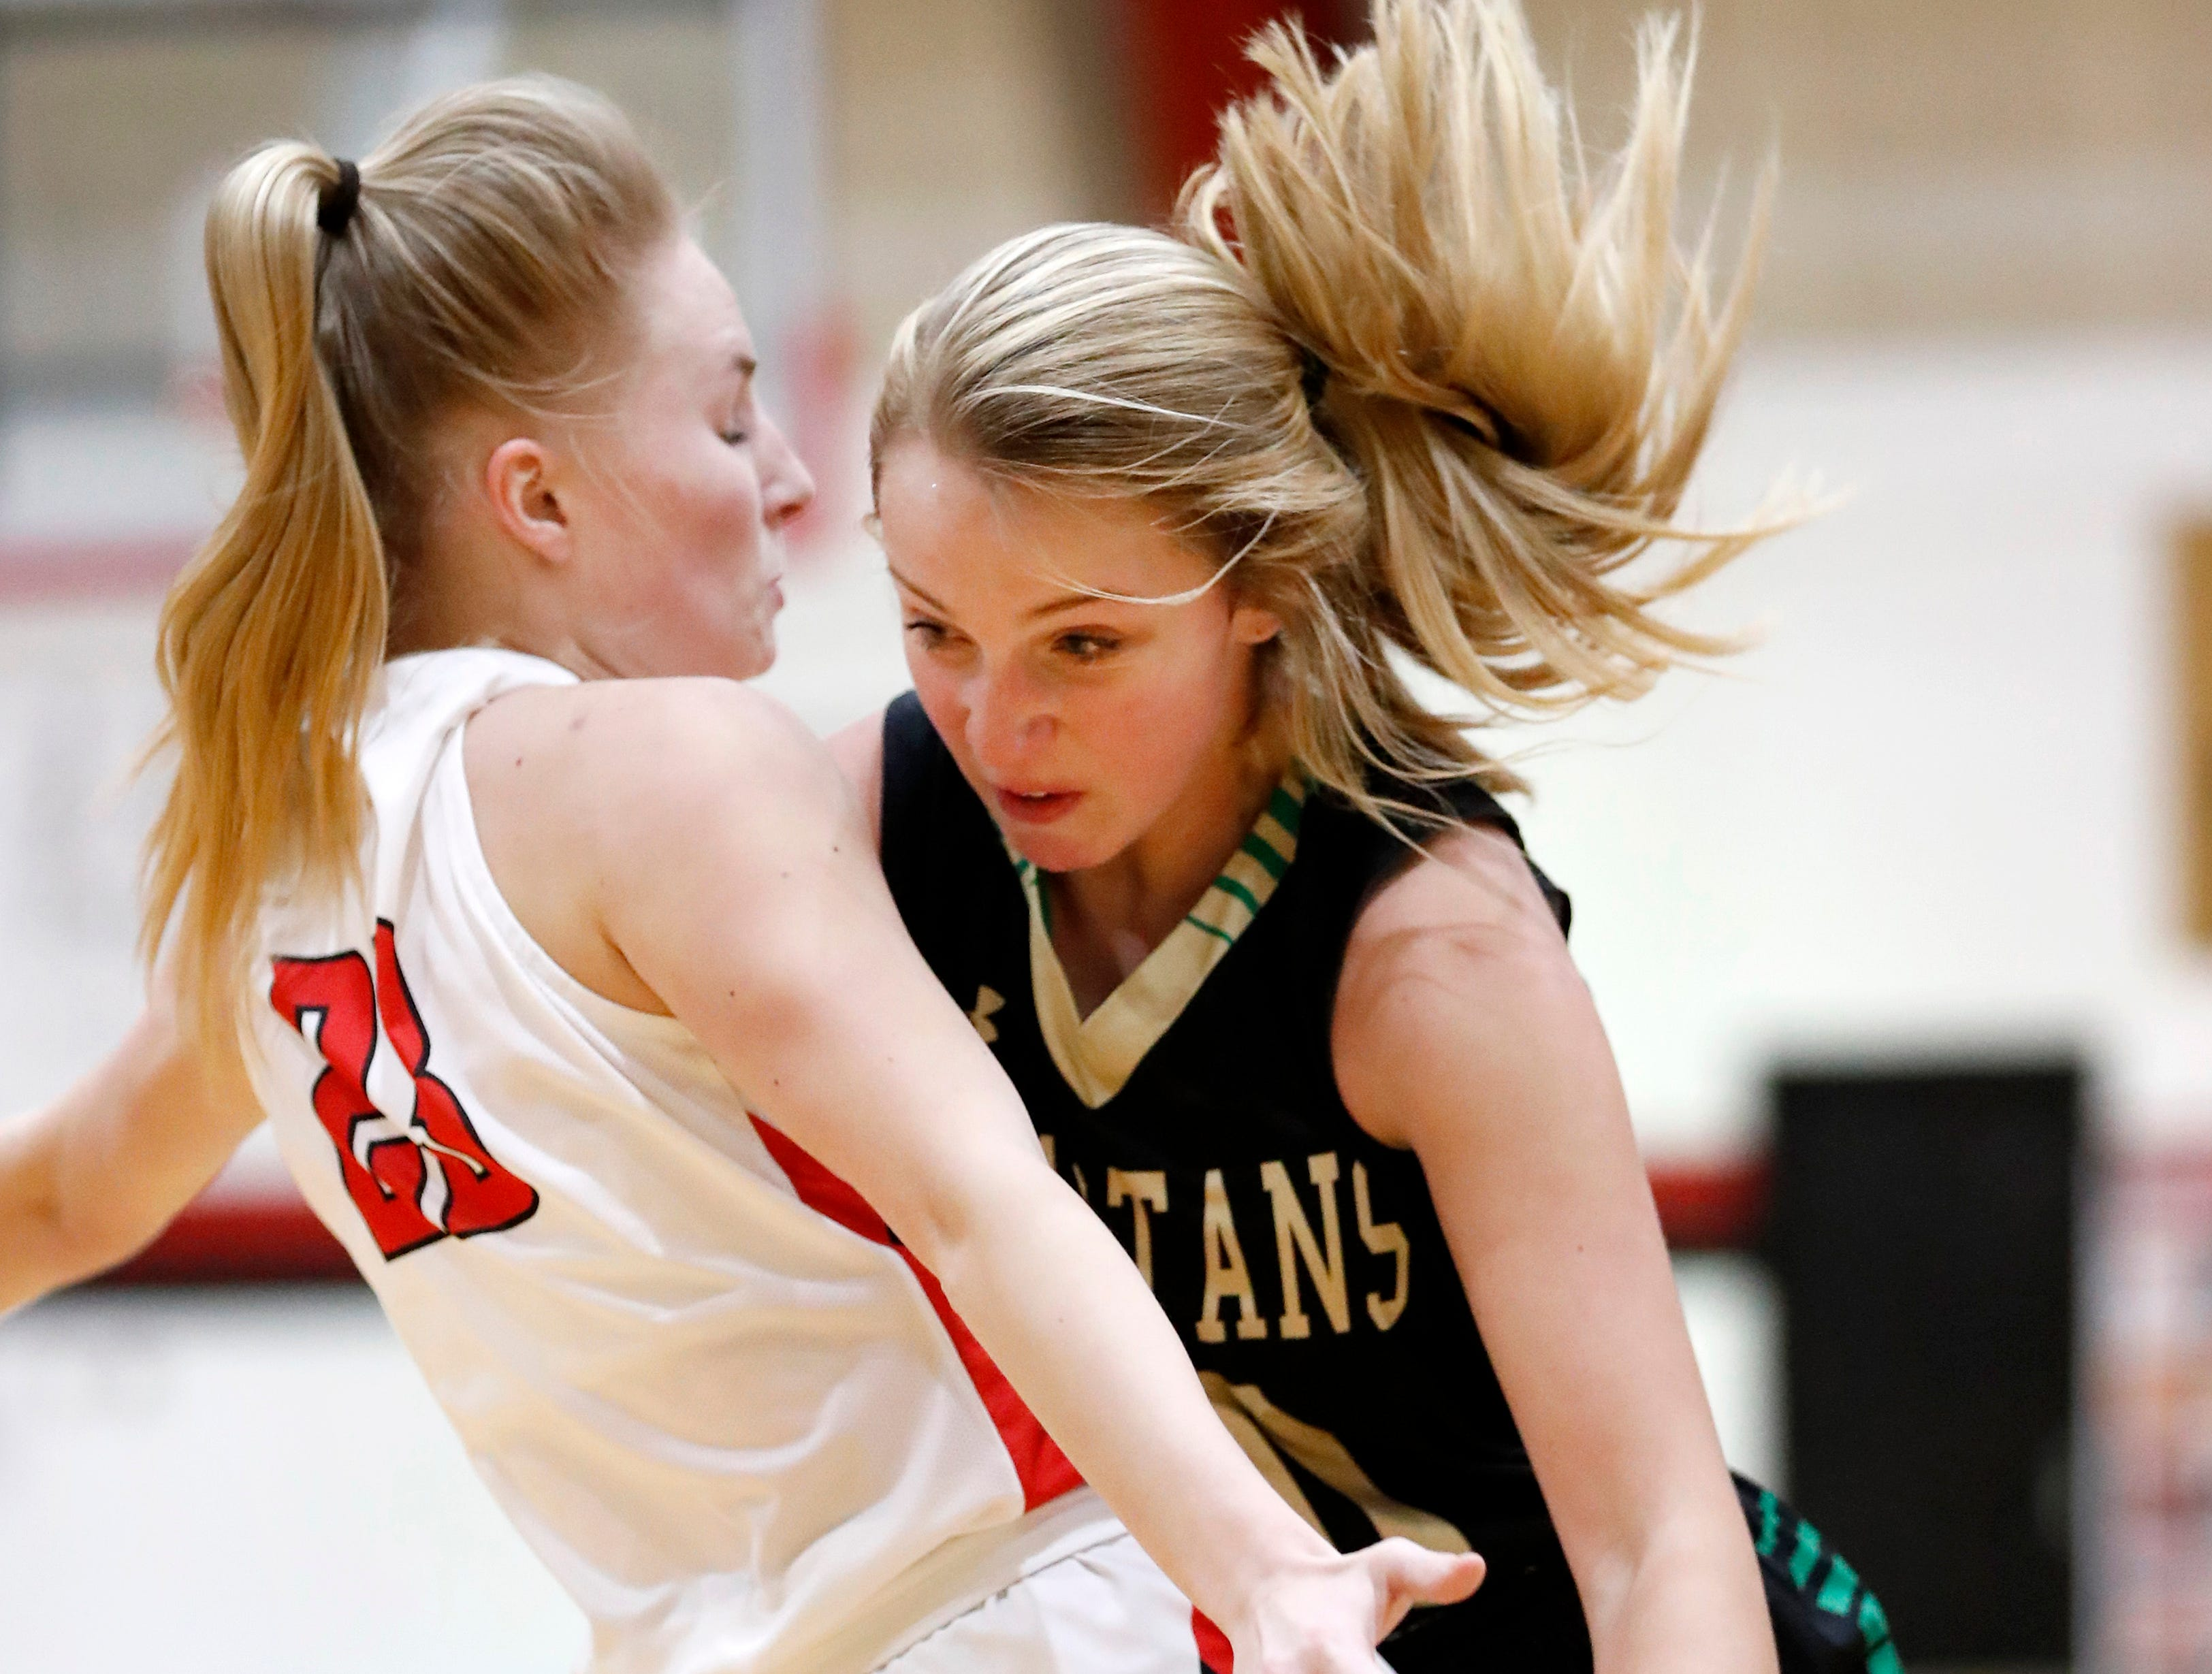 Neenah High SchoolÕs Ella Schroeder fouls Oshkosh North High SchoolÕs Brooke Ellestad as she drives to the basket Friday, Jan. 18, 2019, in Neenah, Wis.